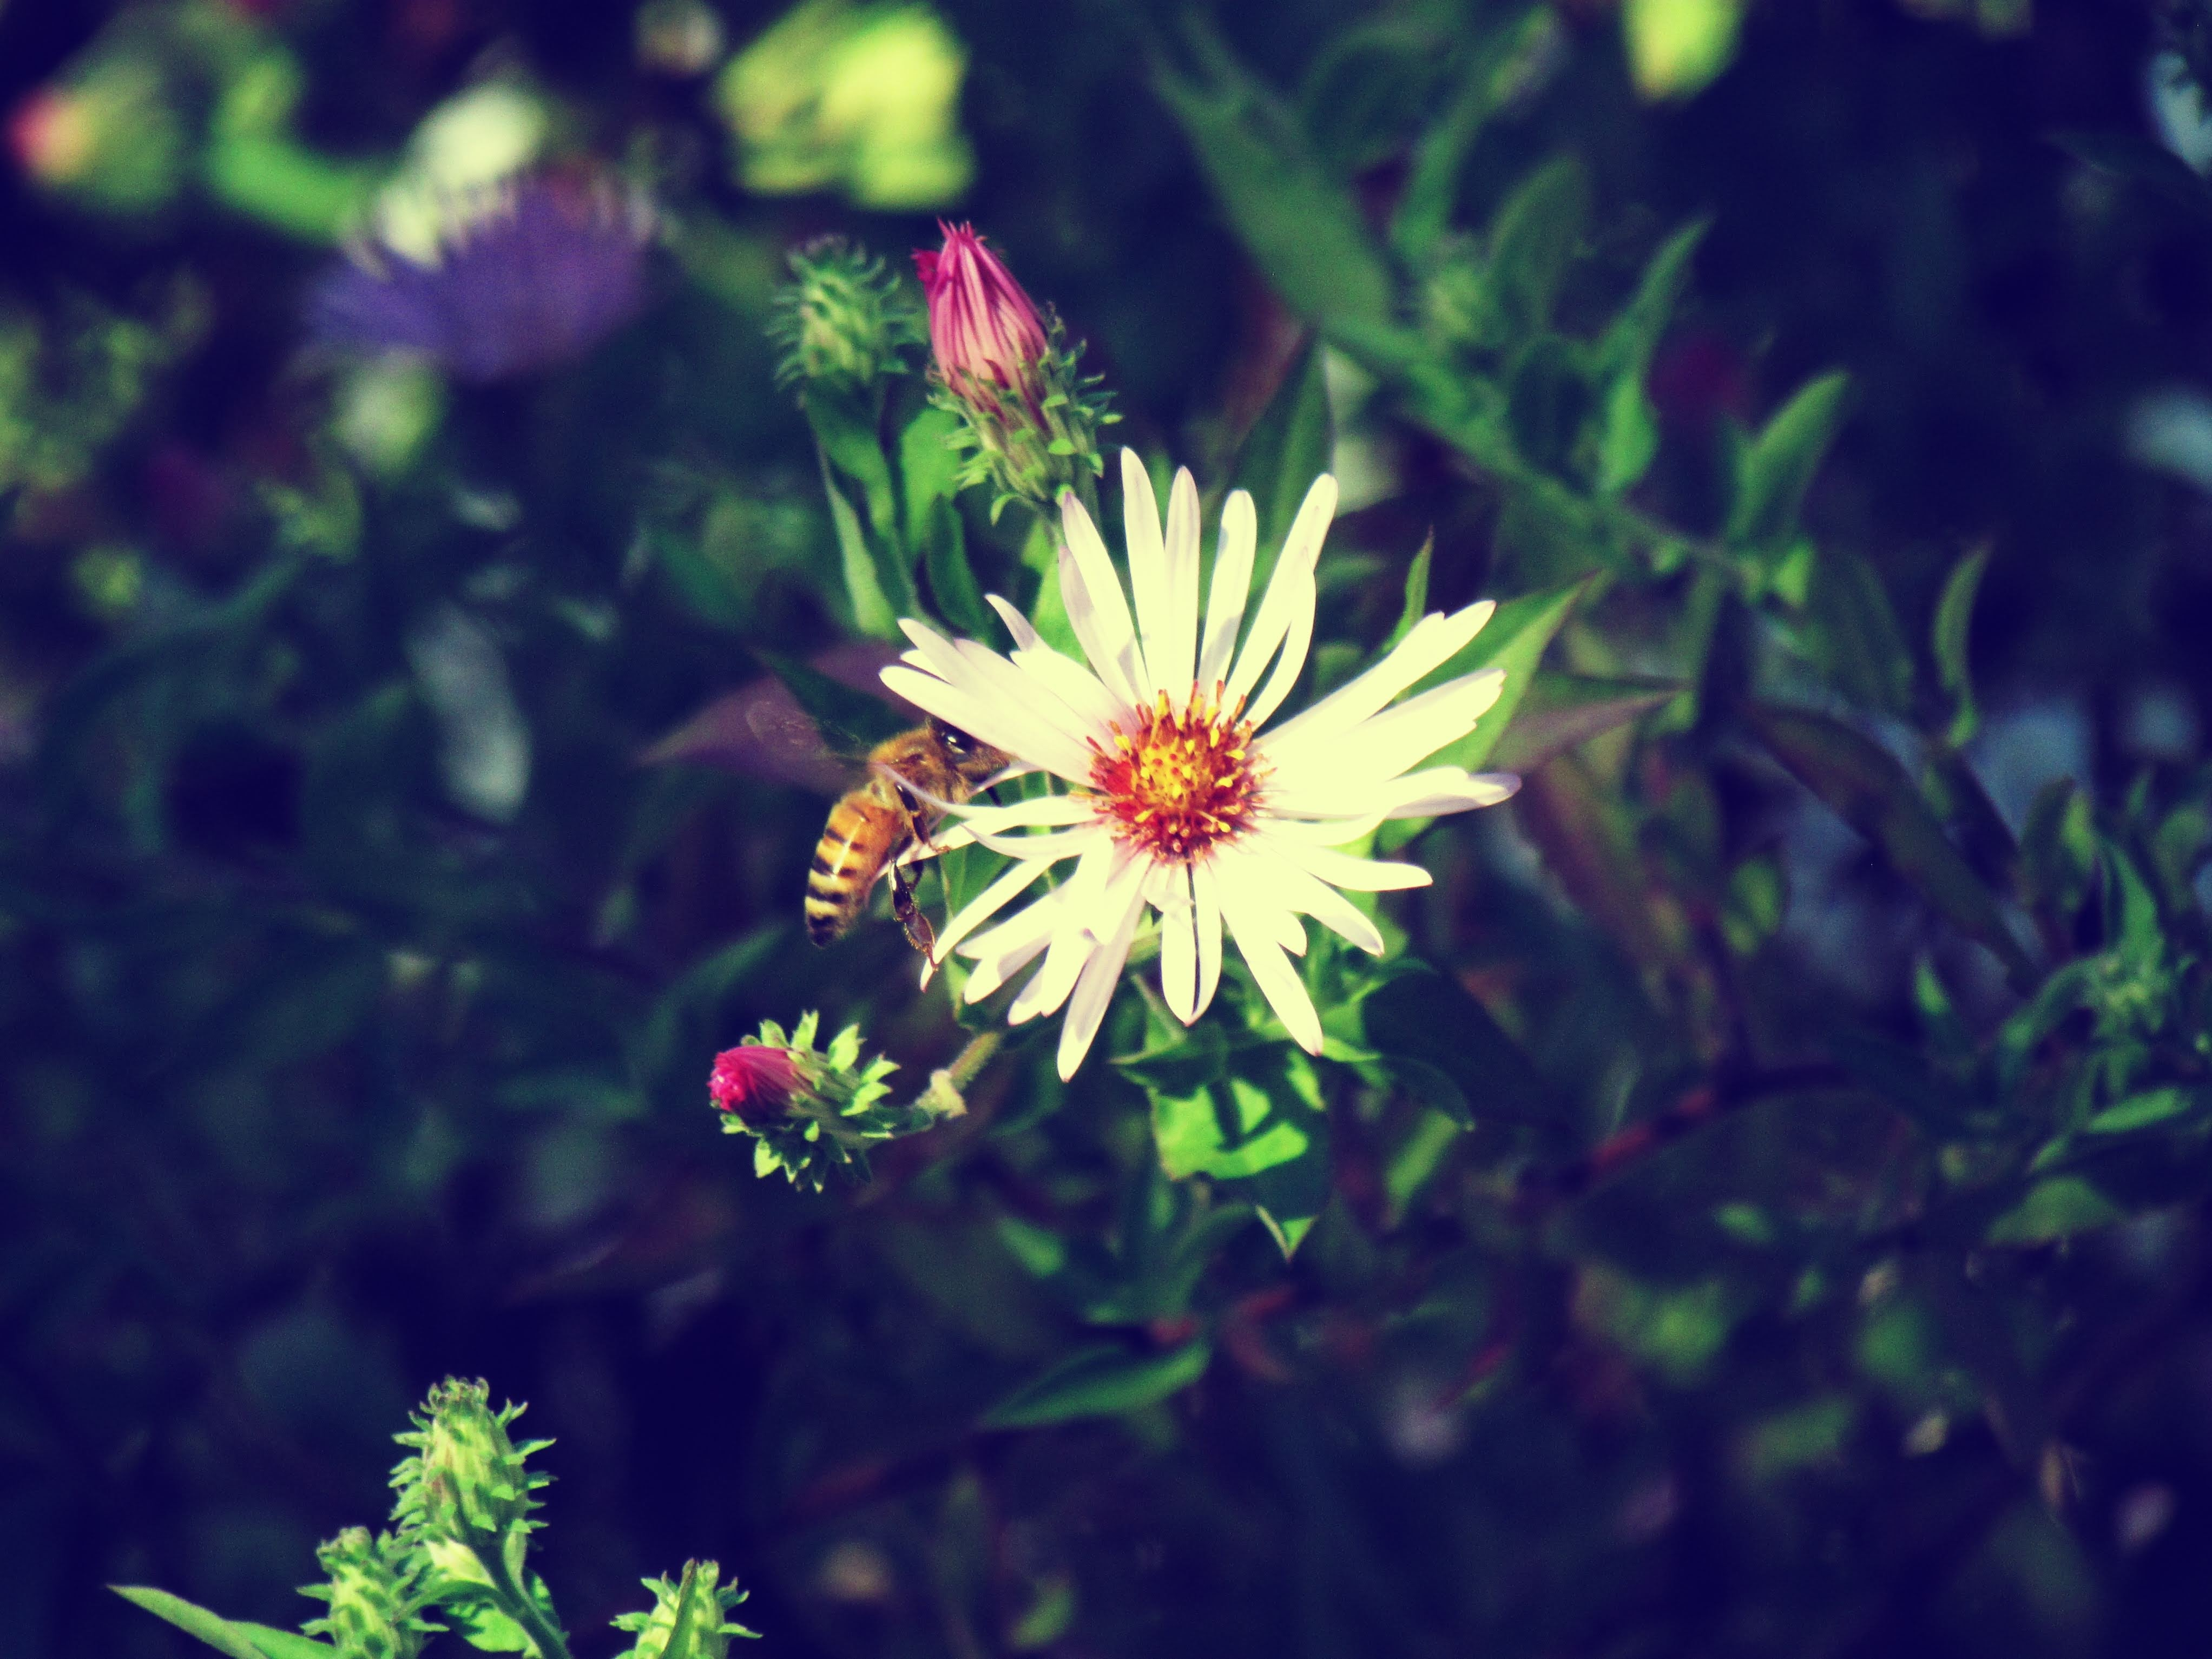 A cute bee buzzing around a flower and pollinating it for the spring blooms in a Florida butterfly garden